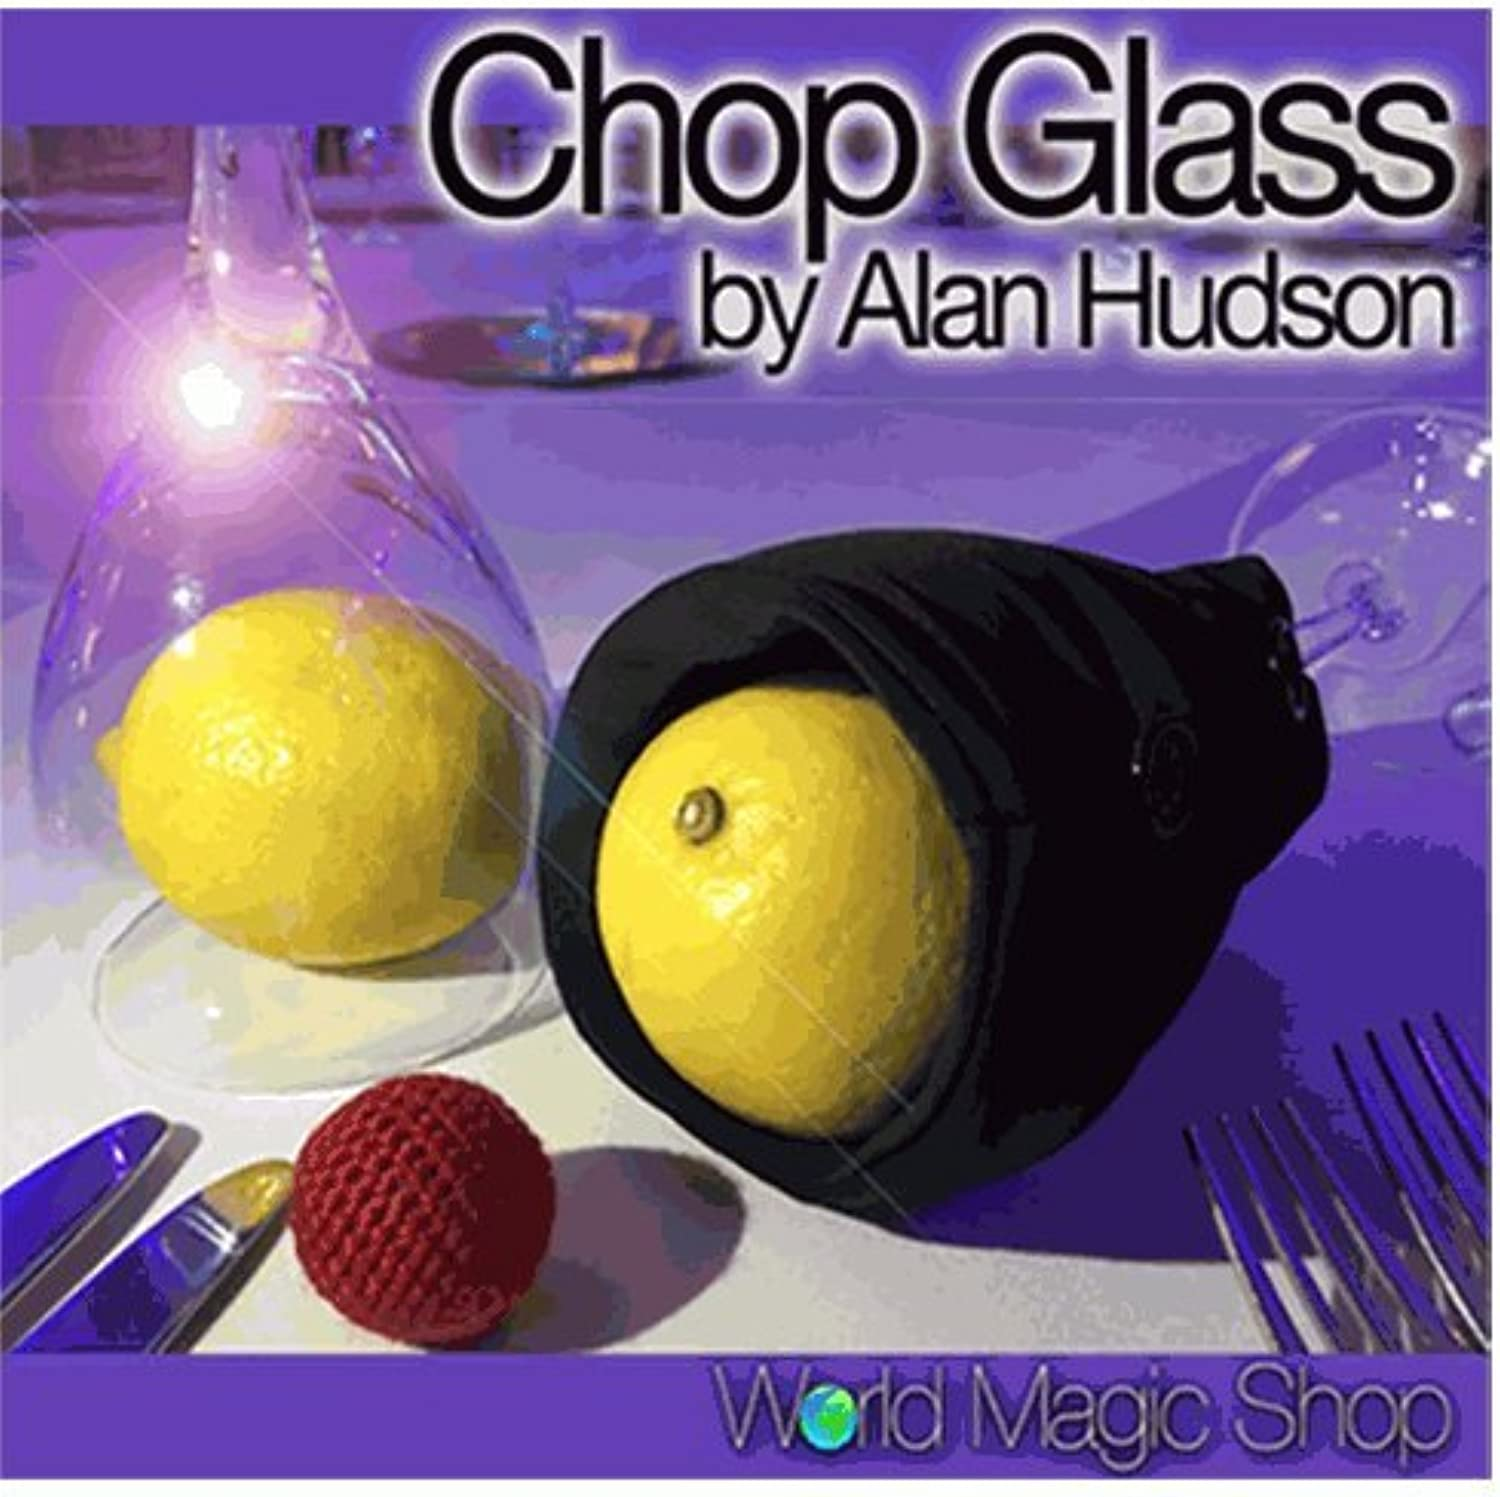 diseño simple y generoso SOLOMAGIA Chop Glass (Gimmicks and Online Online Online Instructions) by Alan Hudson and World Magic Shop - Close-Up Magic - Trucos Magia y la Magia - Magic Tricks and Props  buena calidad